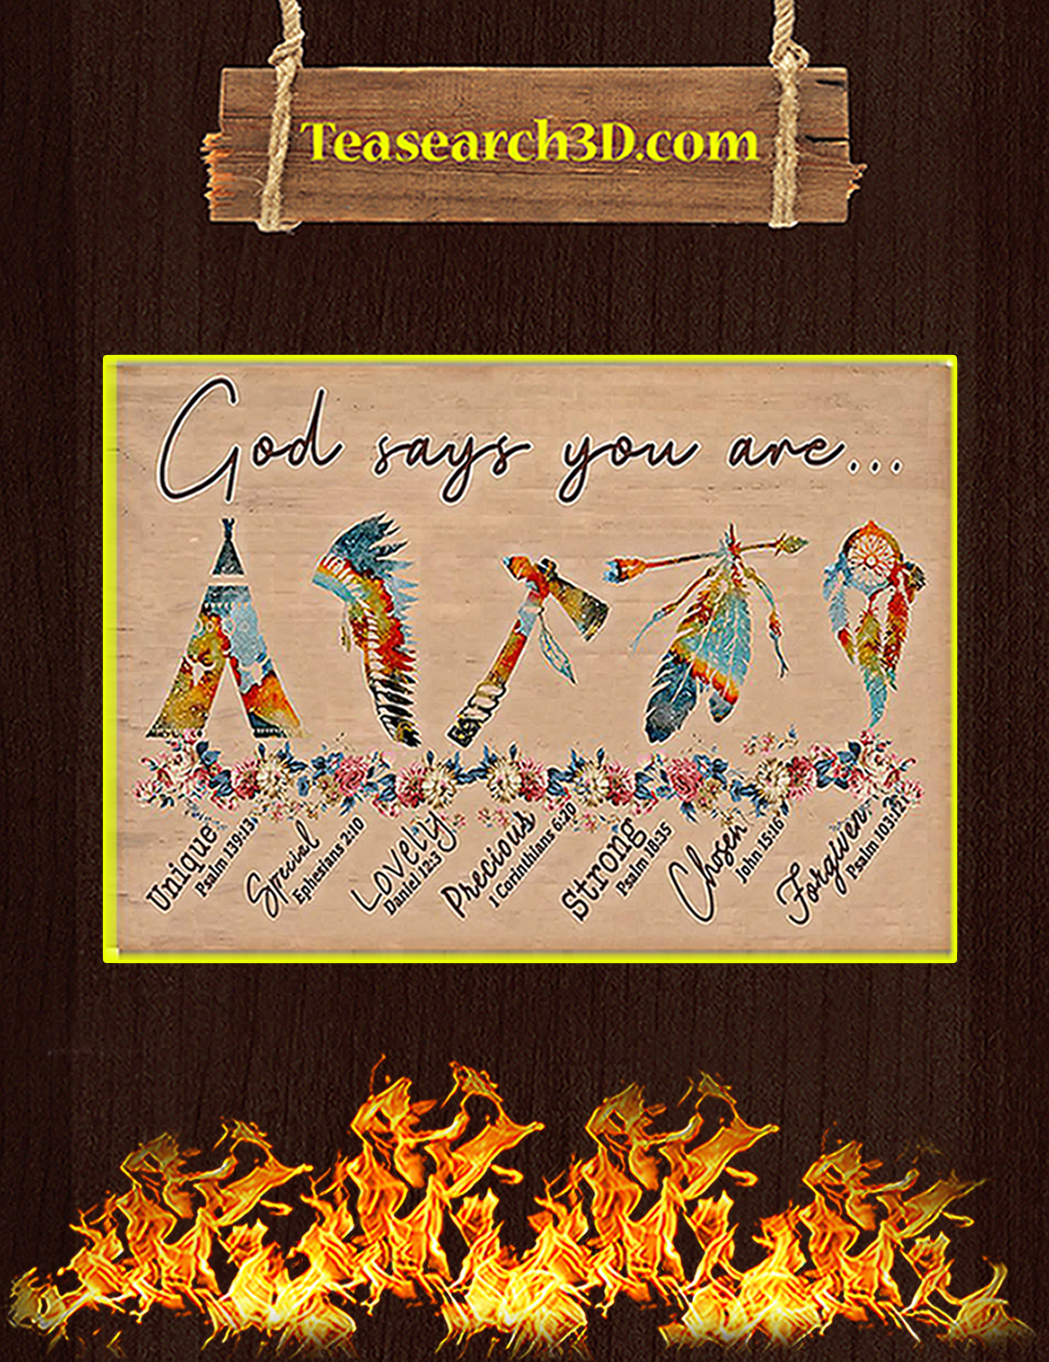 Native god says you are poster A1